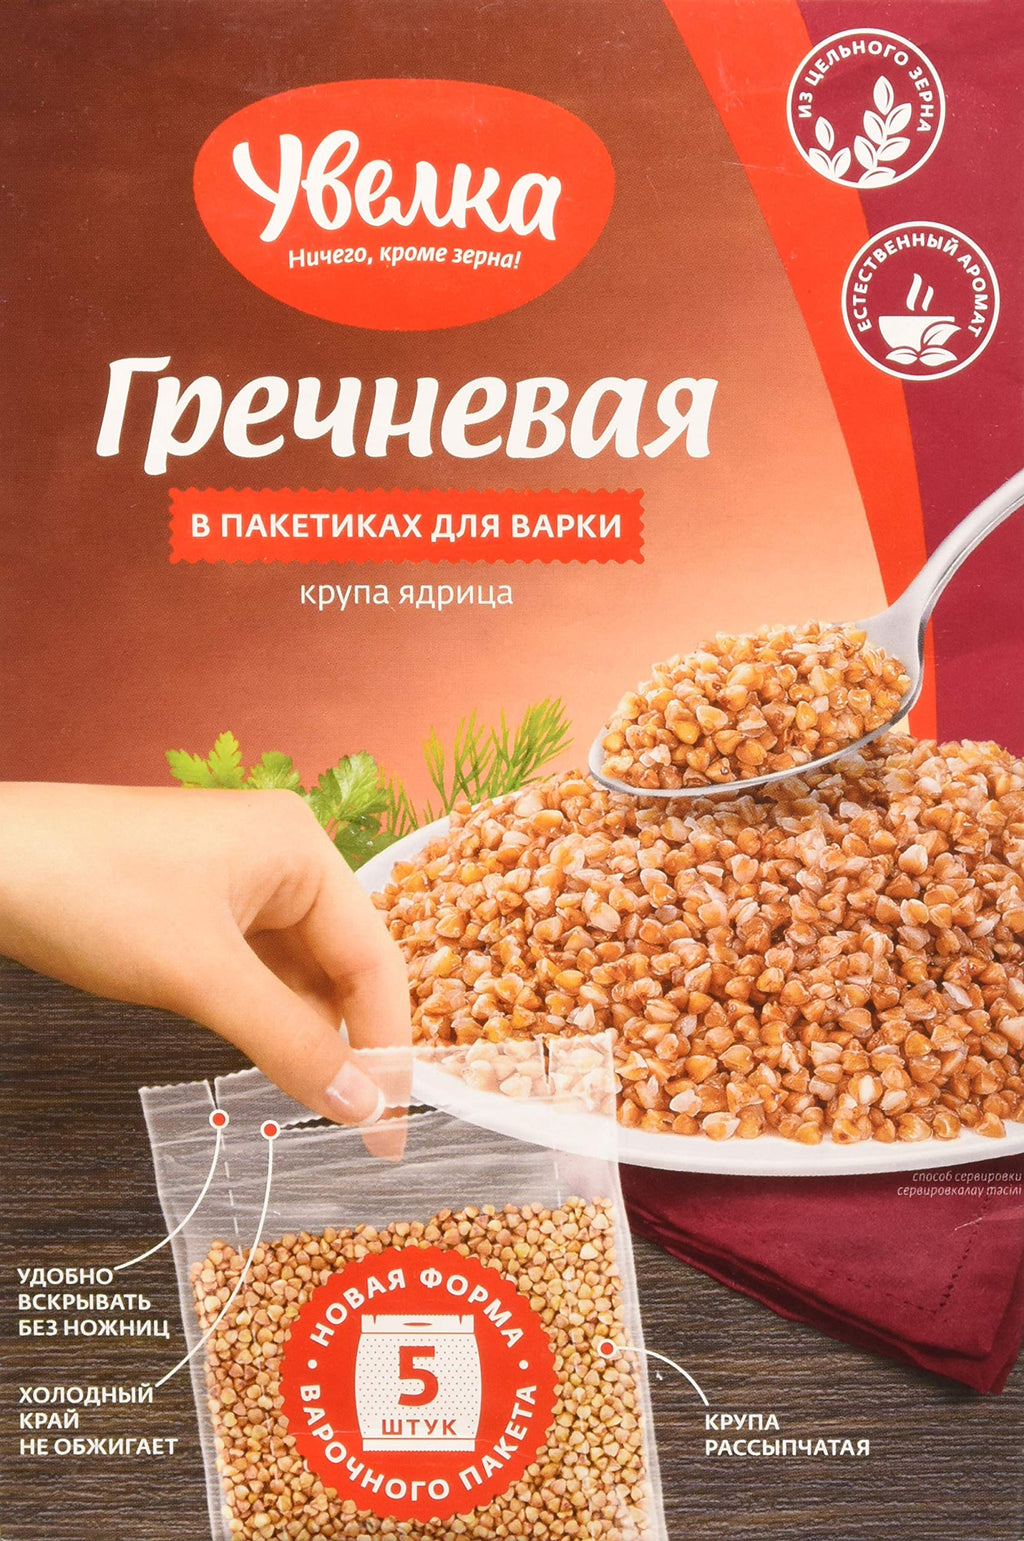 Uvelka Buckwheat Boil In Bag, 5 ct x 2.8 oz, Net weight 14 Ounce / 400 Gram, organic food